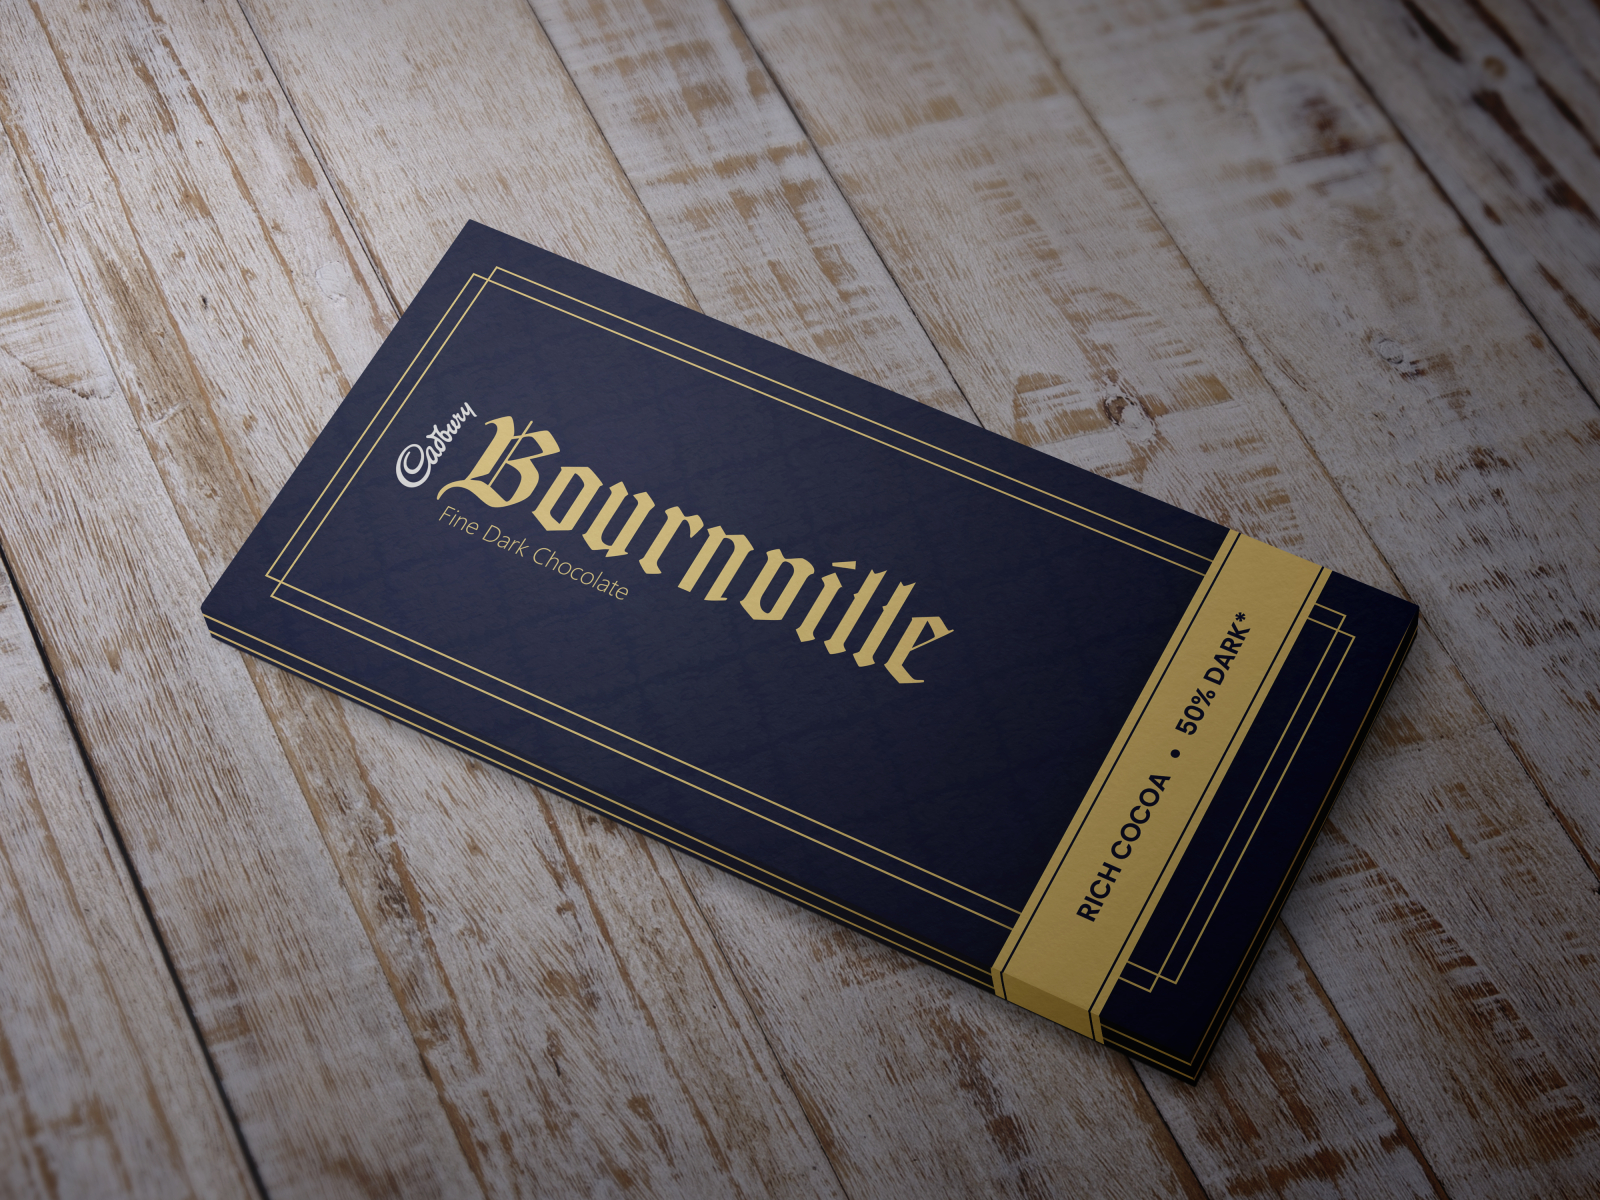 Redesign the Wrapper of Bournville - Royal, Minimal